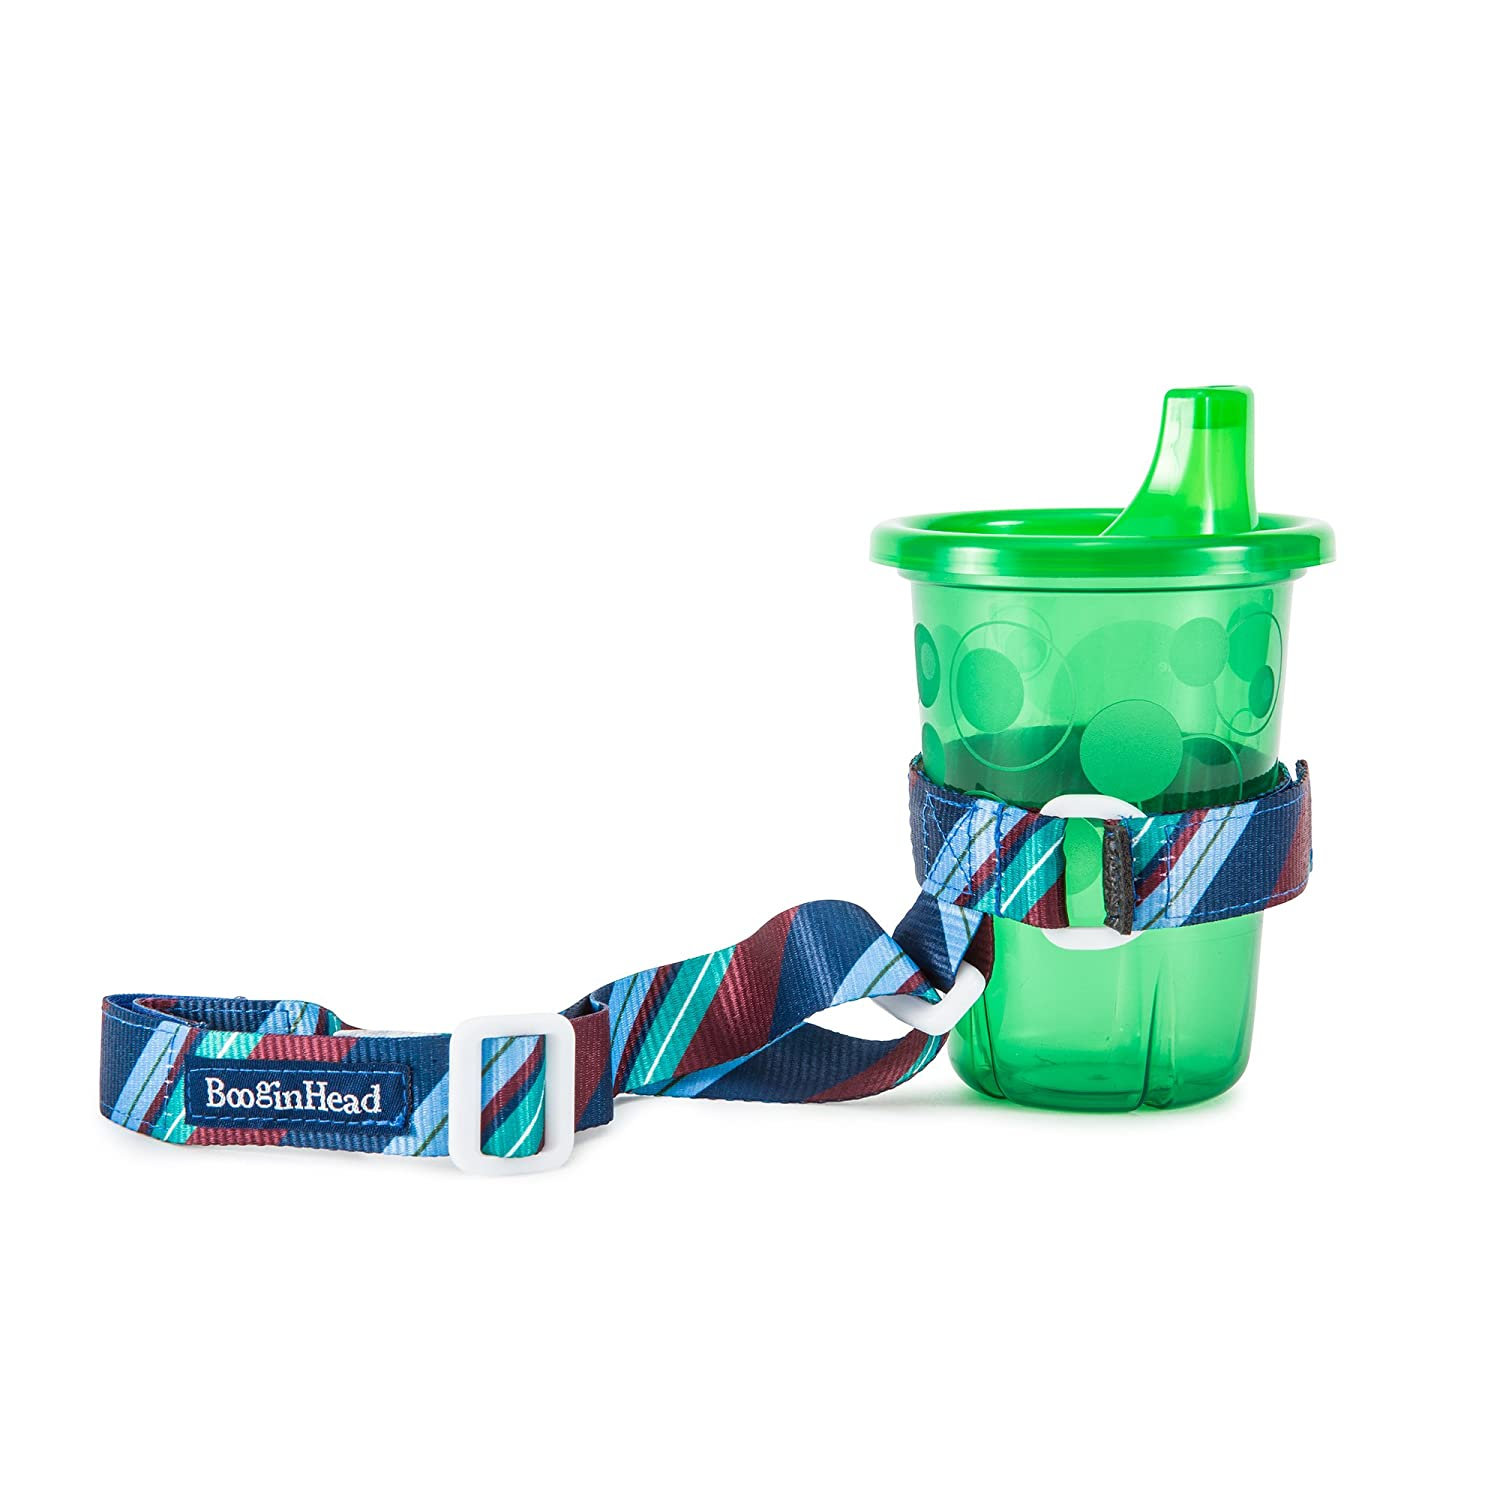 BooginHead BooginHead - SippiGrip Sippy Cup and Bottle Holder, High Chair and Car Seat Universal Attachment Strap - Blue Green Stripe, Blue and Green BGSG-107